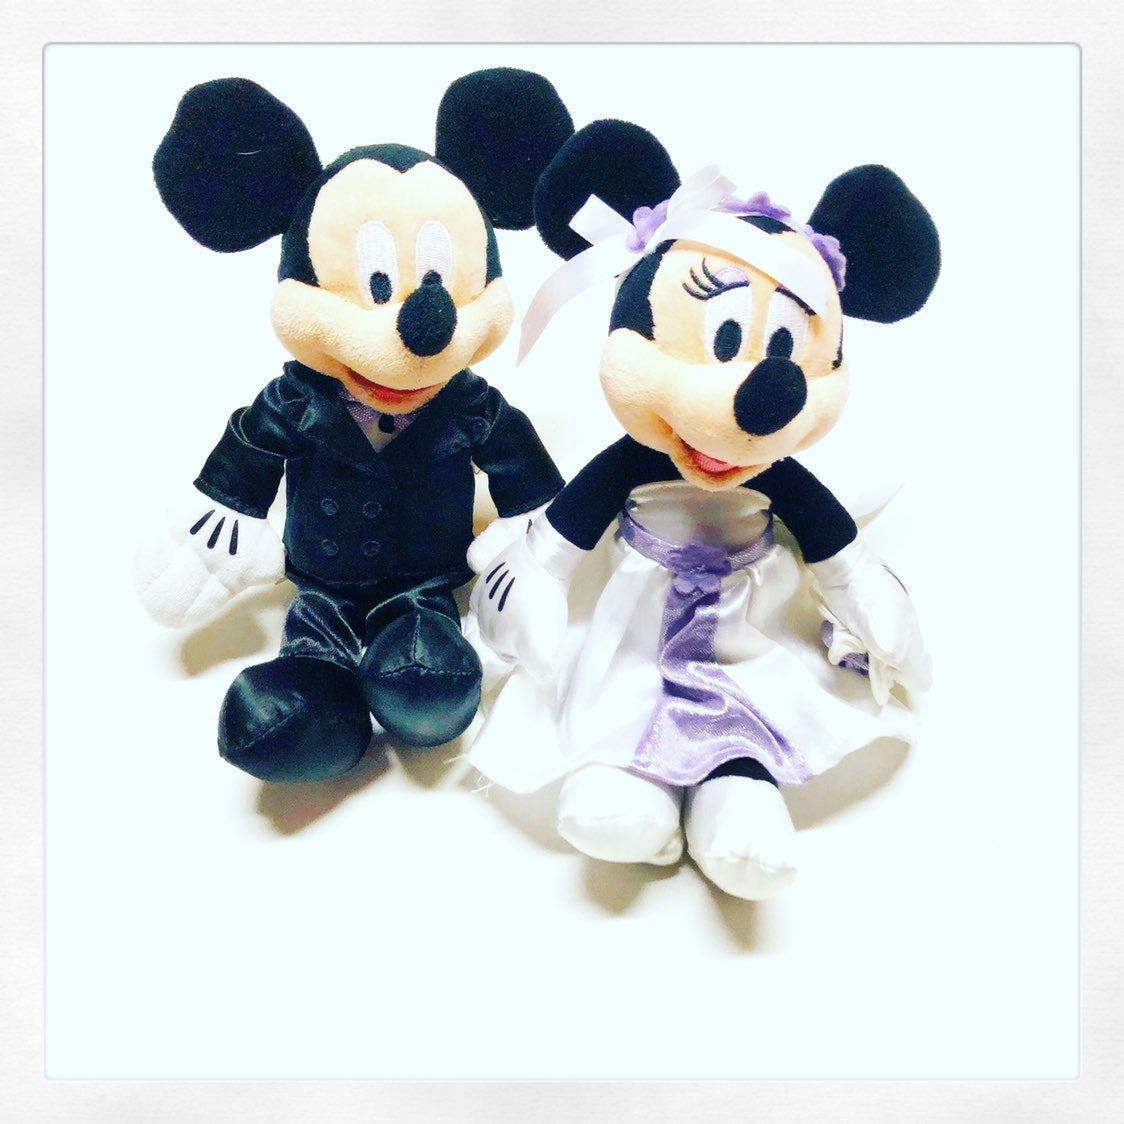 Mickey Mouse / Minnie Mouse Plush Set